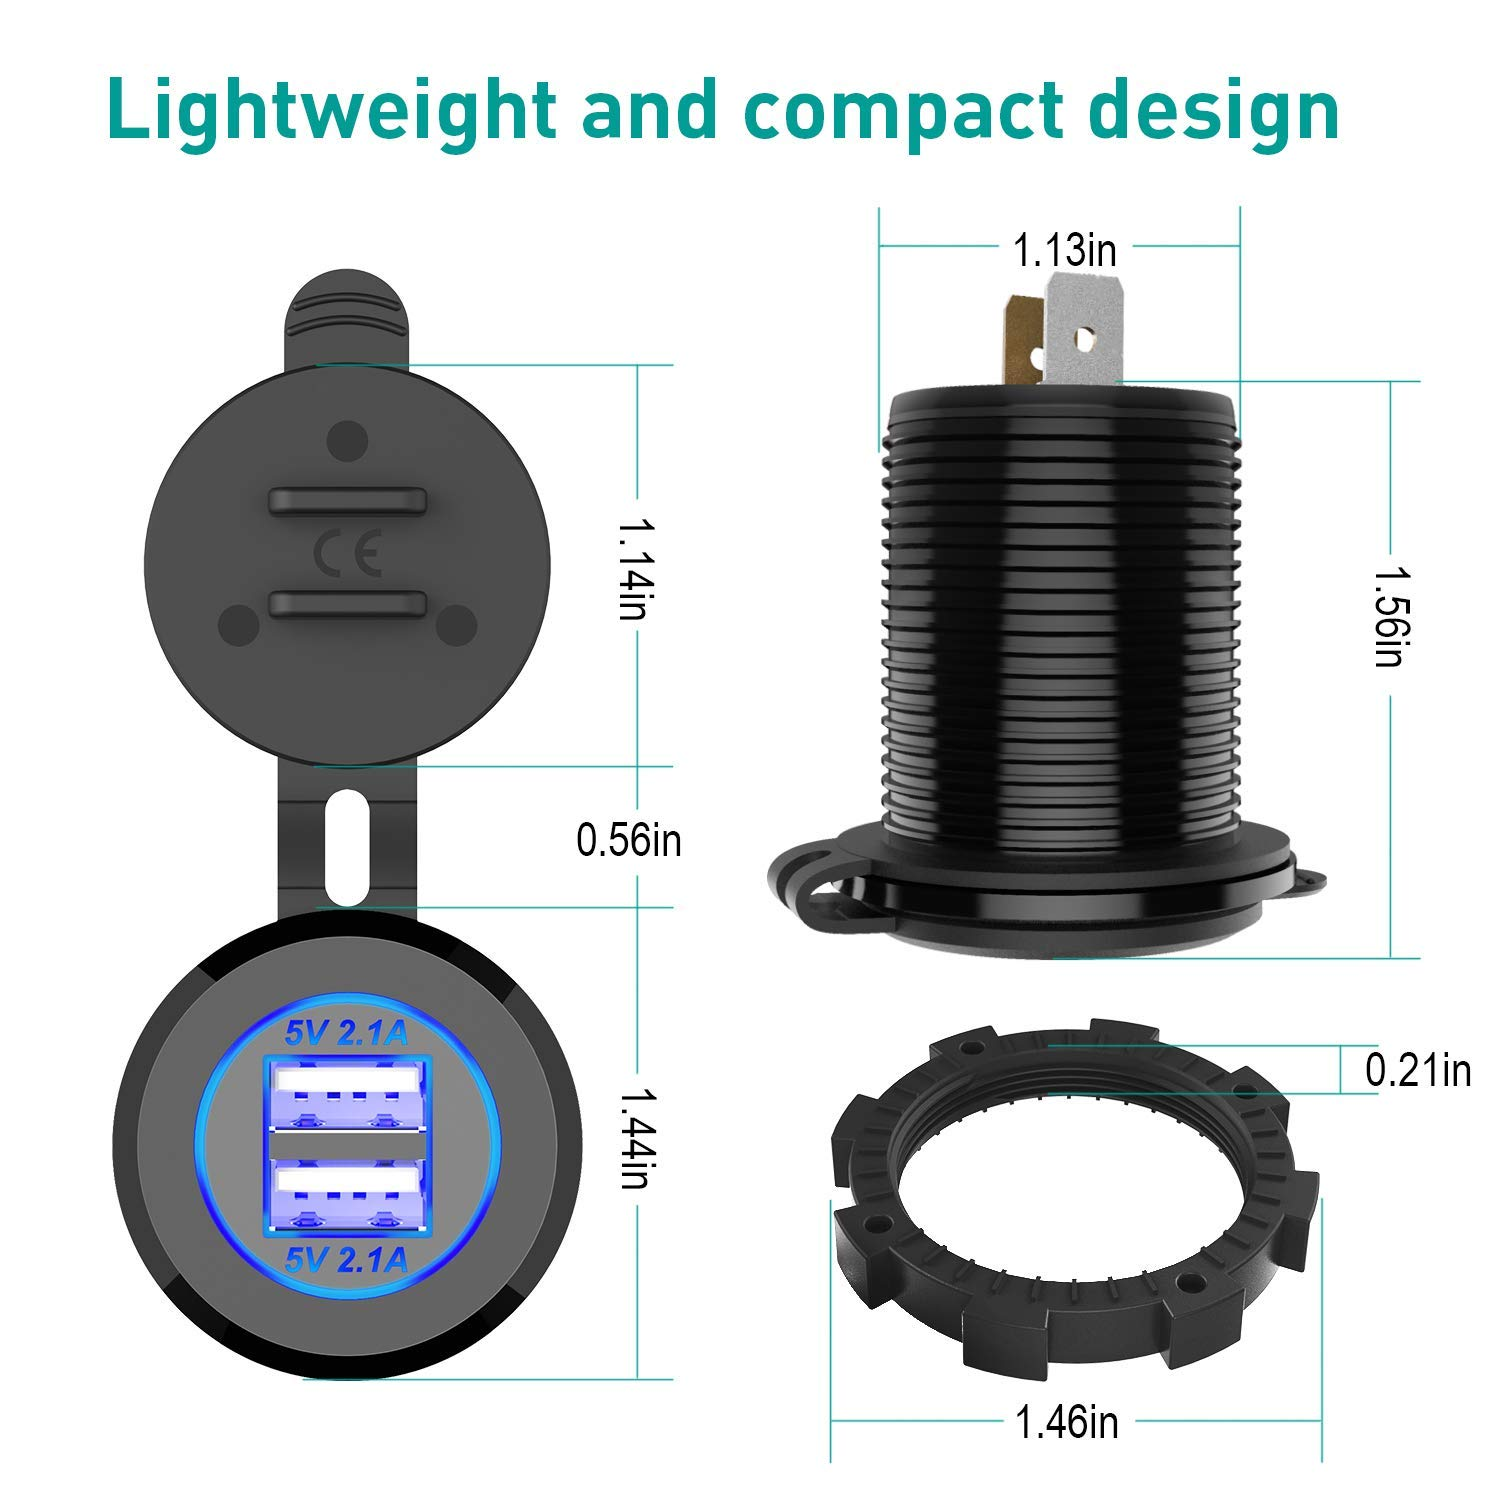 ZBLighting Dual 4.2A USB Car Charger Socket Waterproof Power Car Power Charger Socket Outlet 4.2A Fast Charge Car Charger Adapter for 12V~24V Vehicles Car Boat Motorcycle SUV Truck Caravan Marine